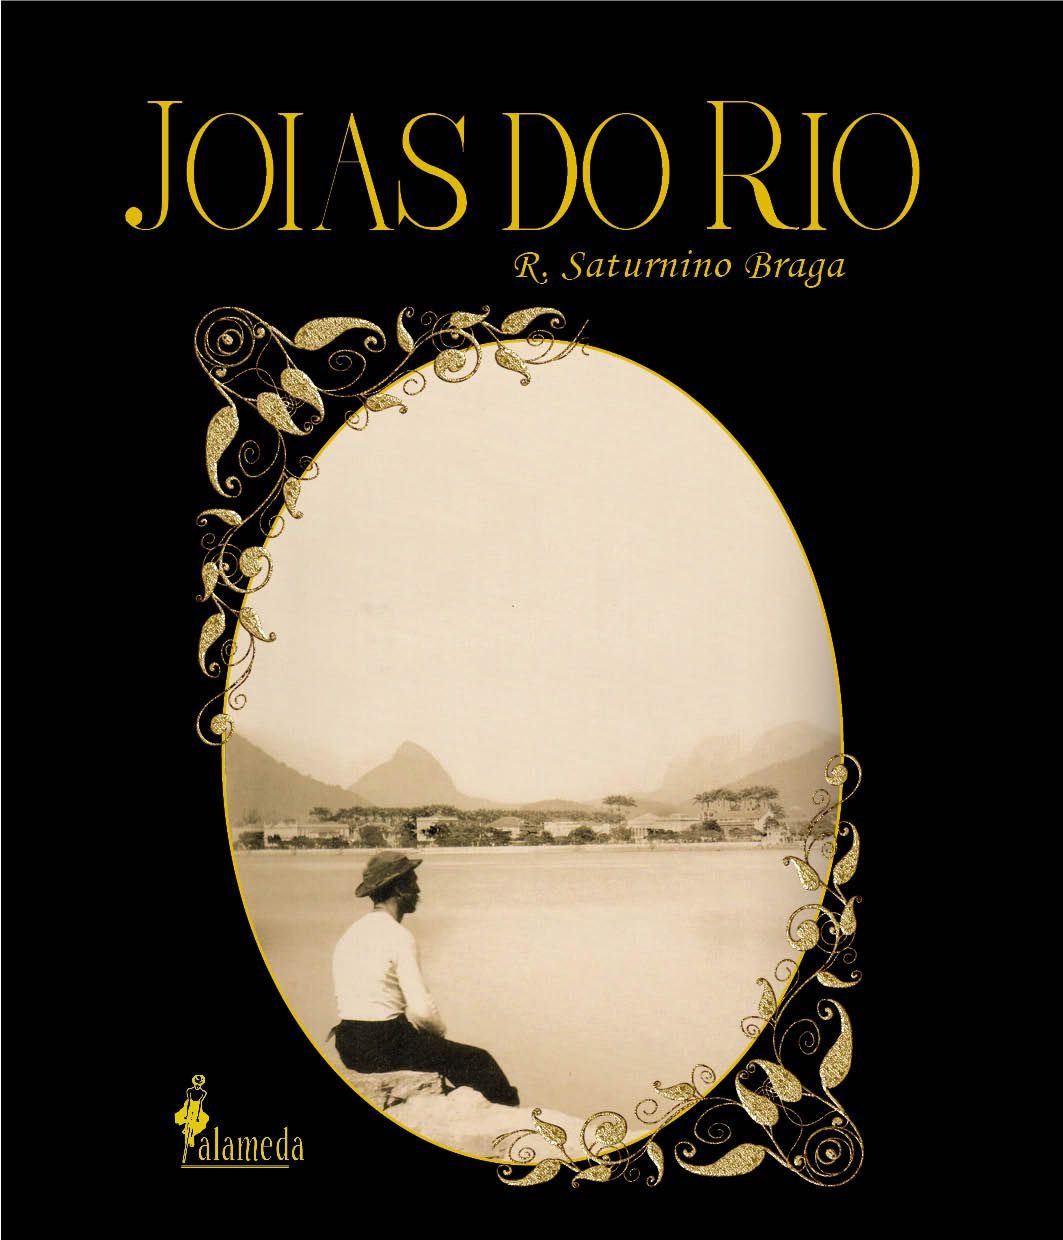 Joias do Rio - R. Saturnino Braga